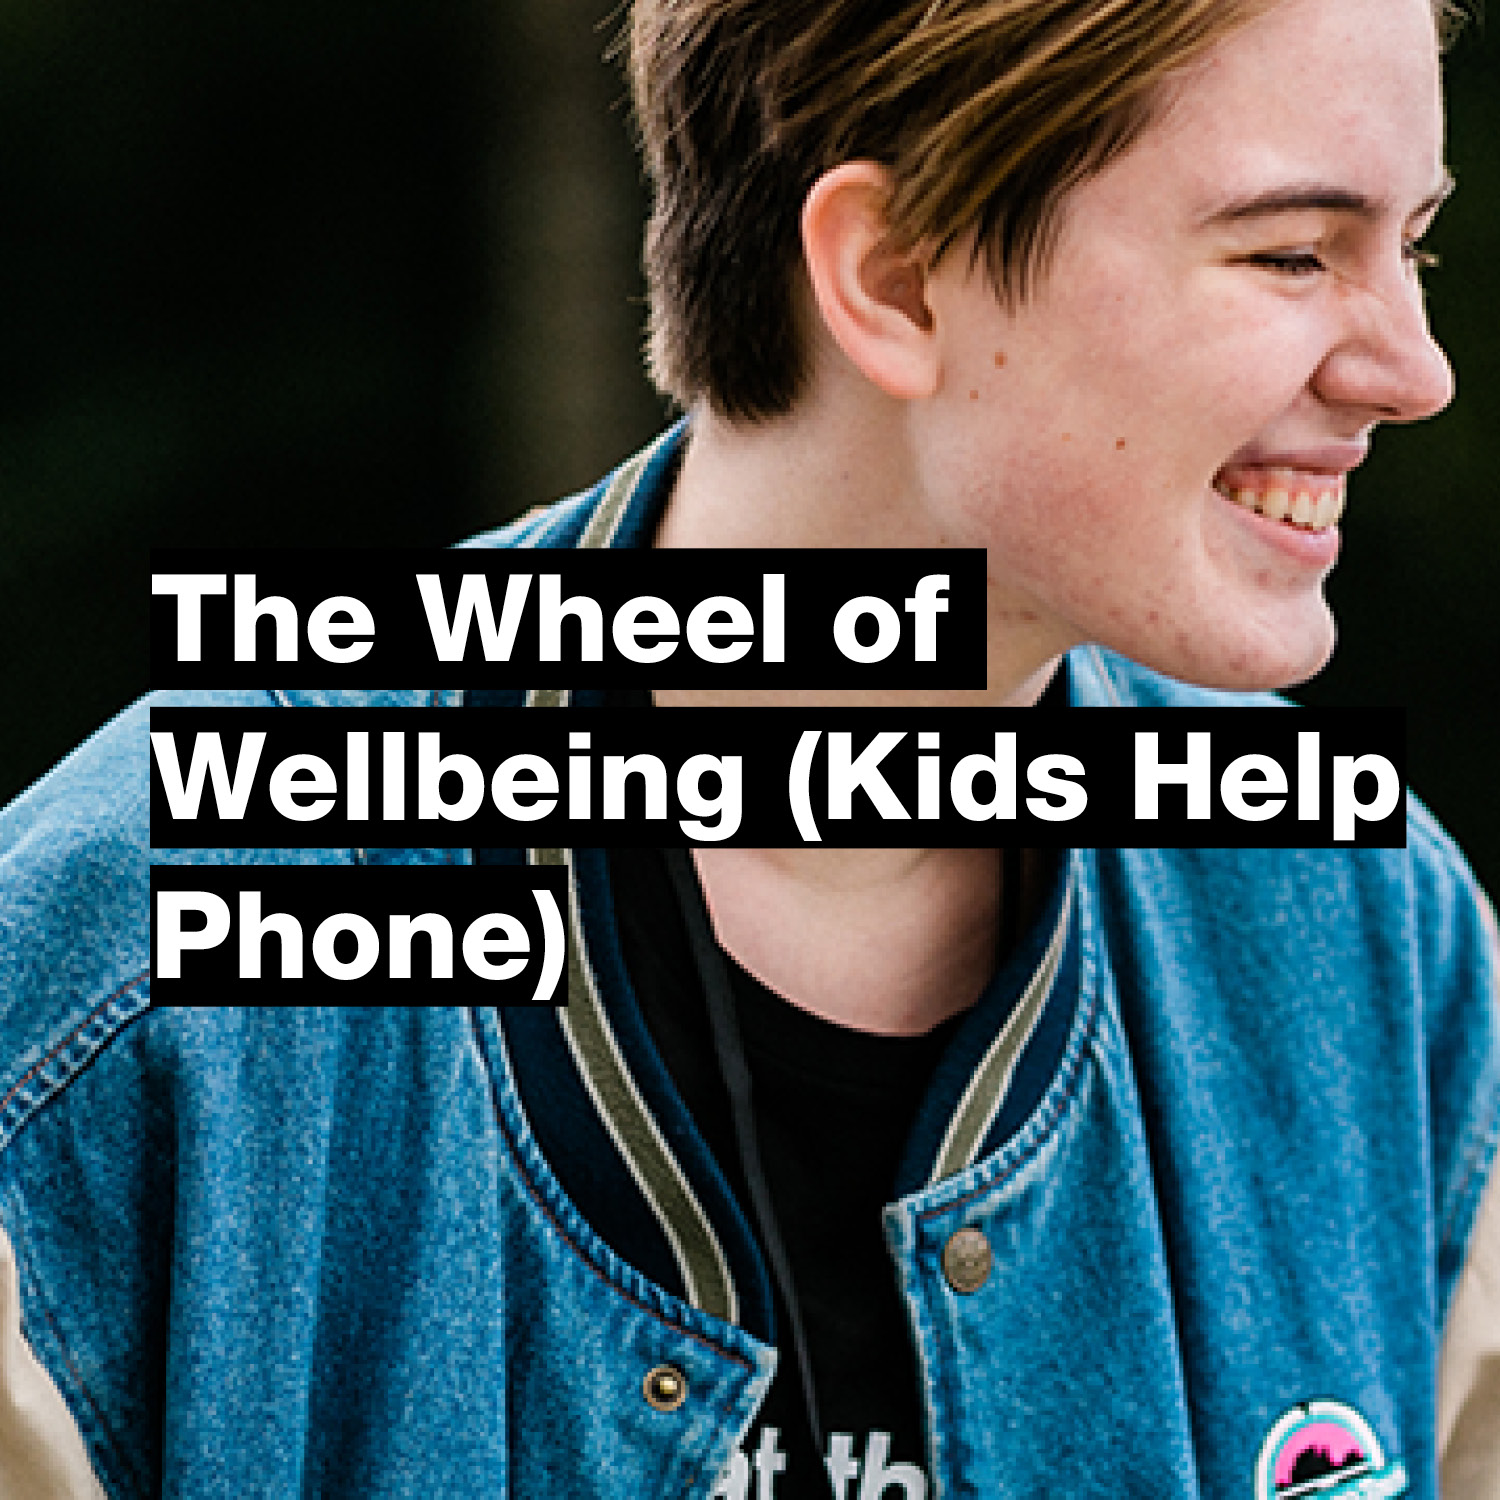 The Wheel of Wellbeing (Kids Help Phone)